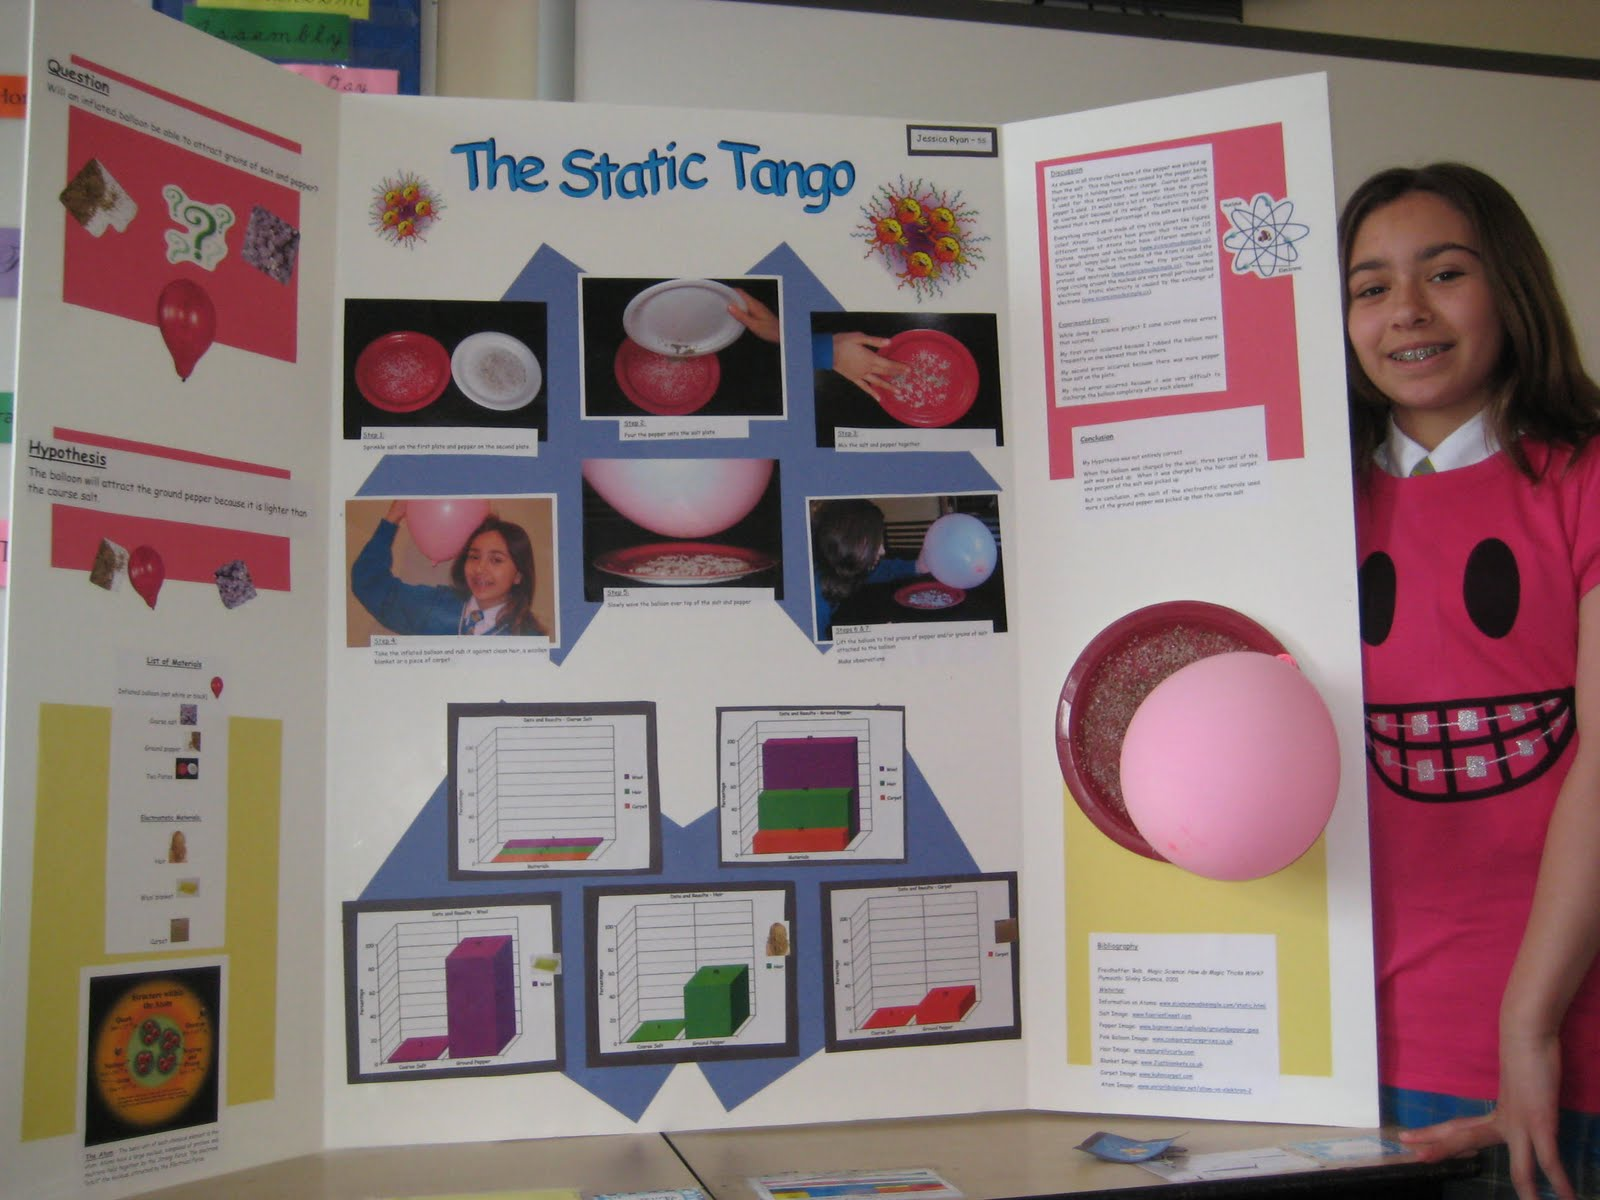 Science Fair project help me please?